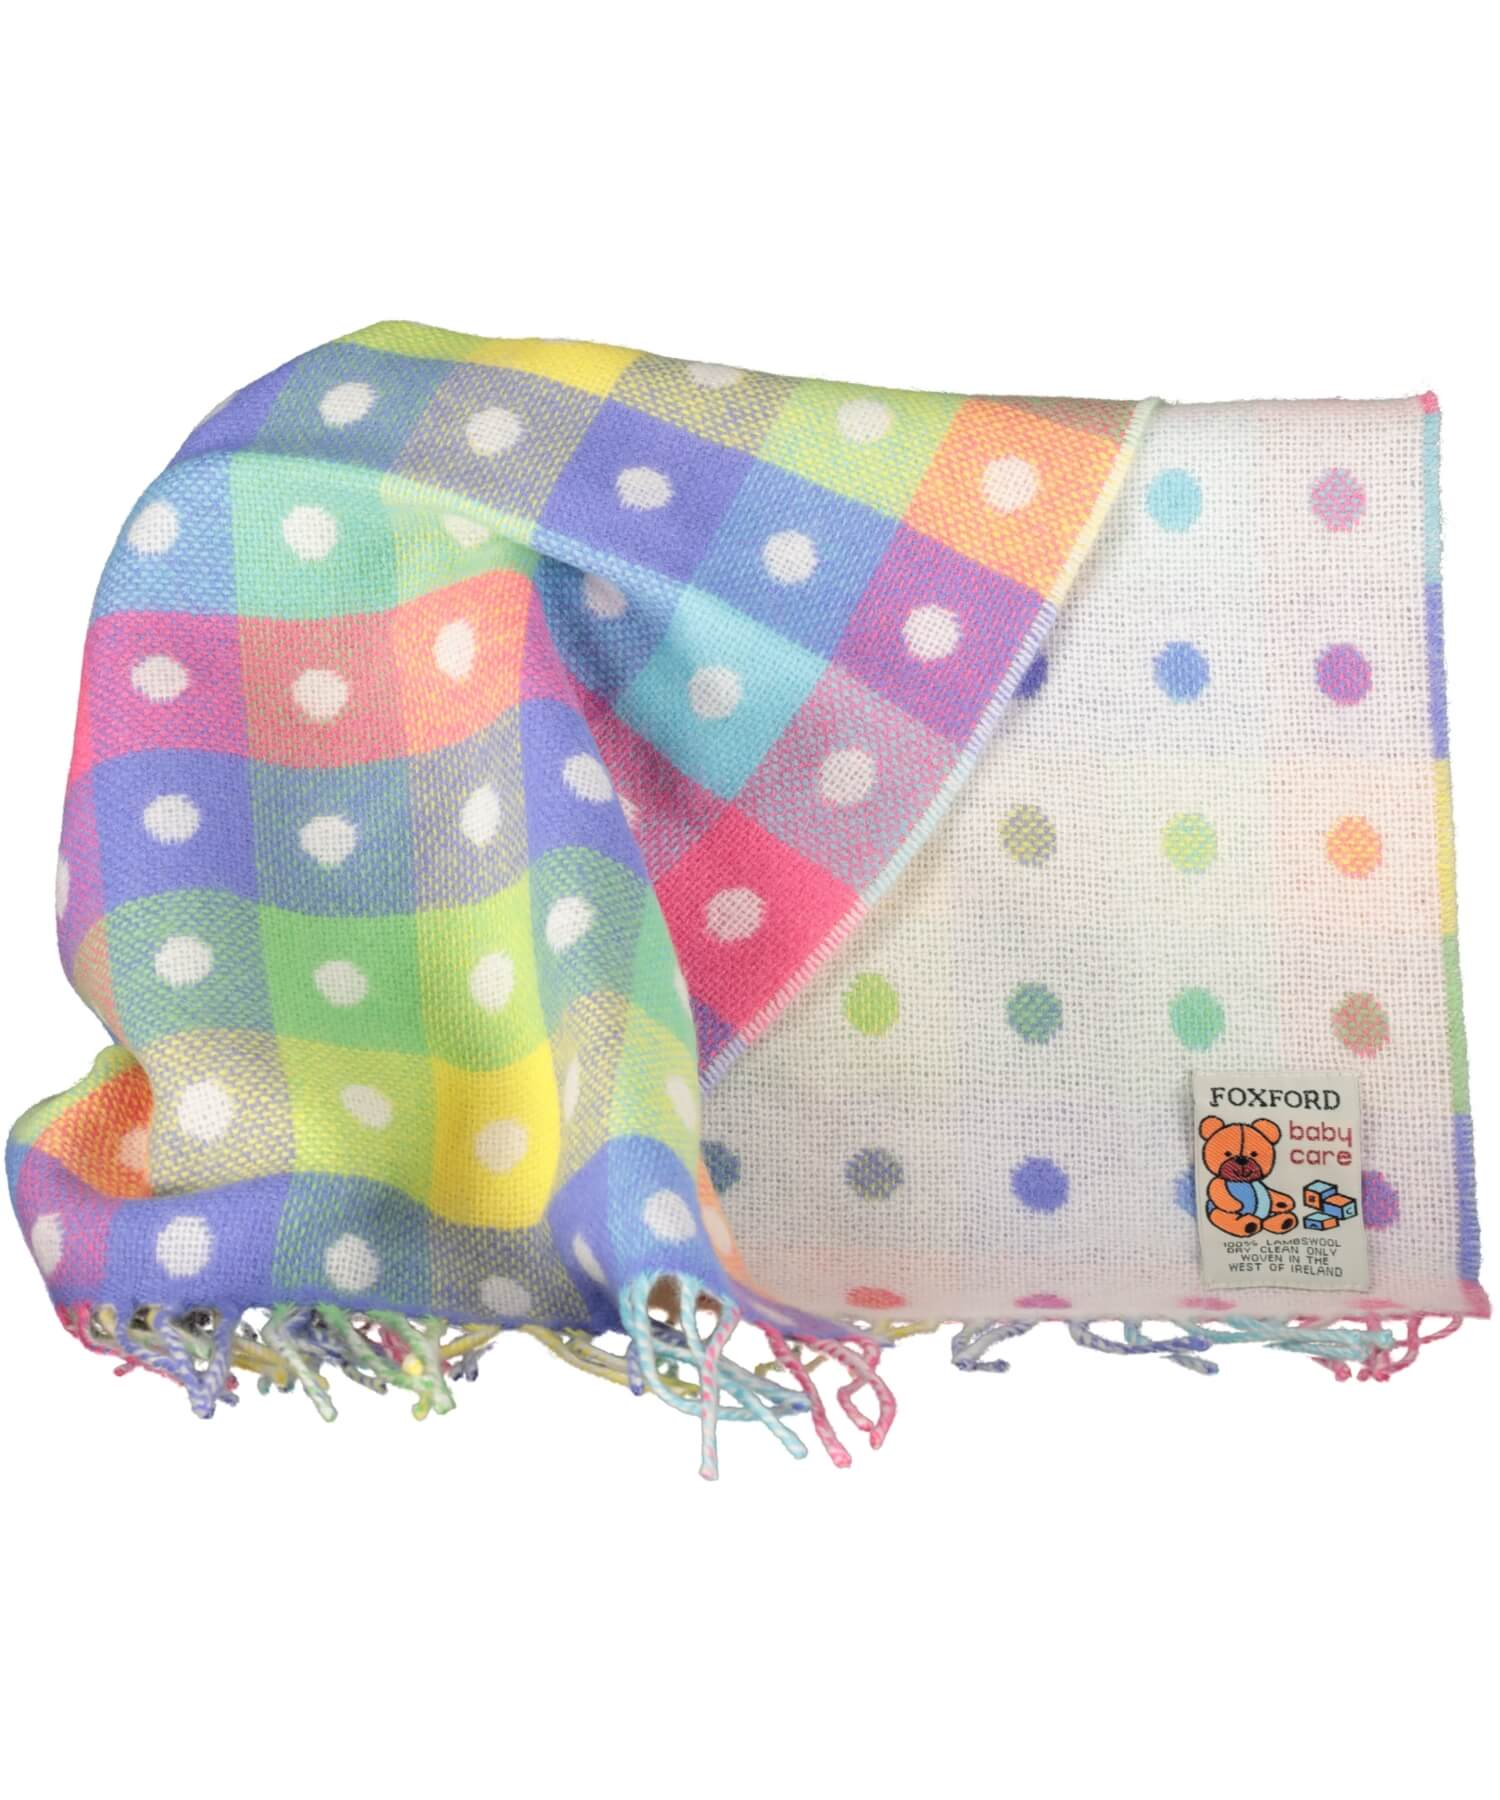 Baby Blanket - White Multi Spot - [Foxford] - Throws & Cushions - Irish Gifts